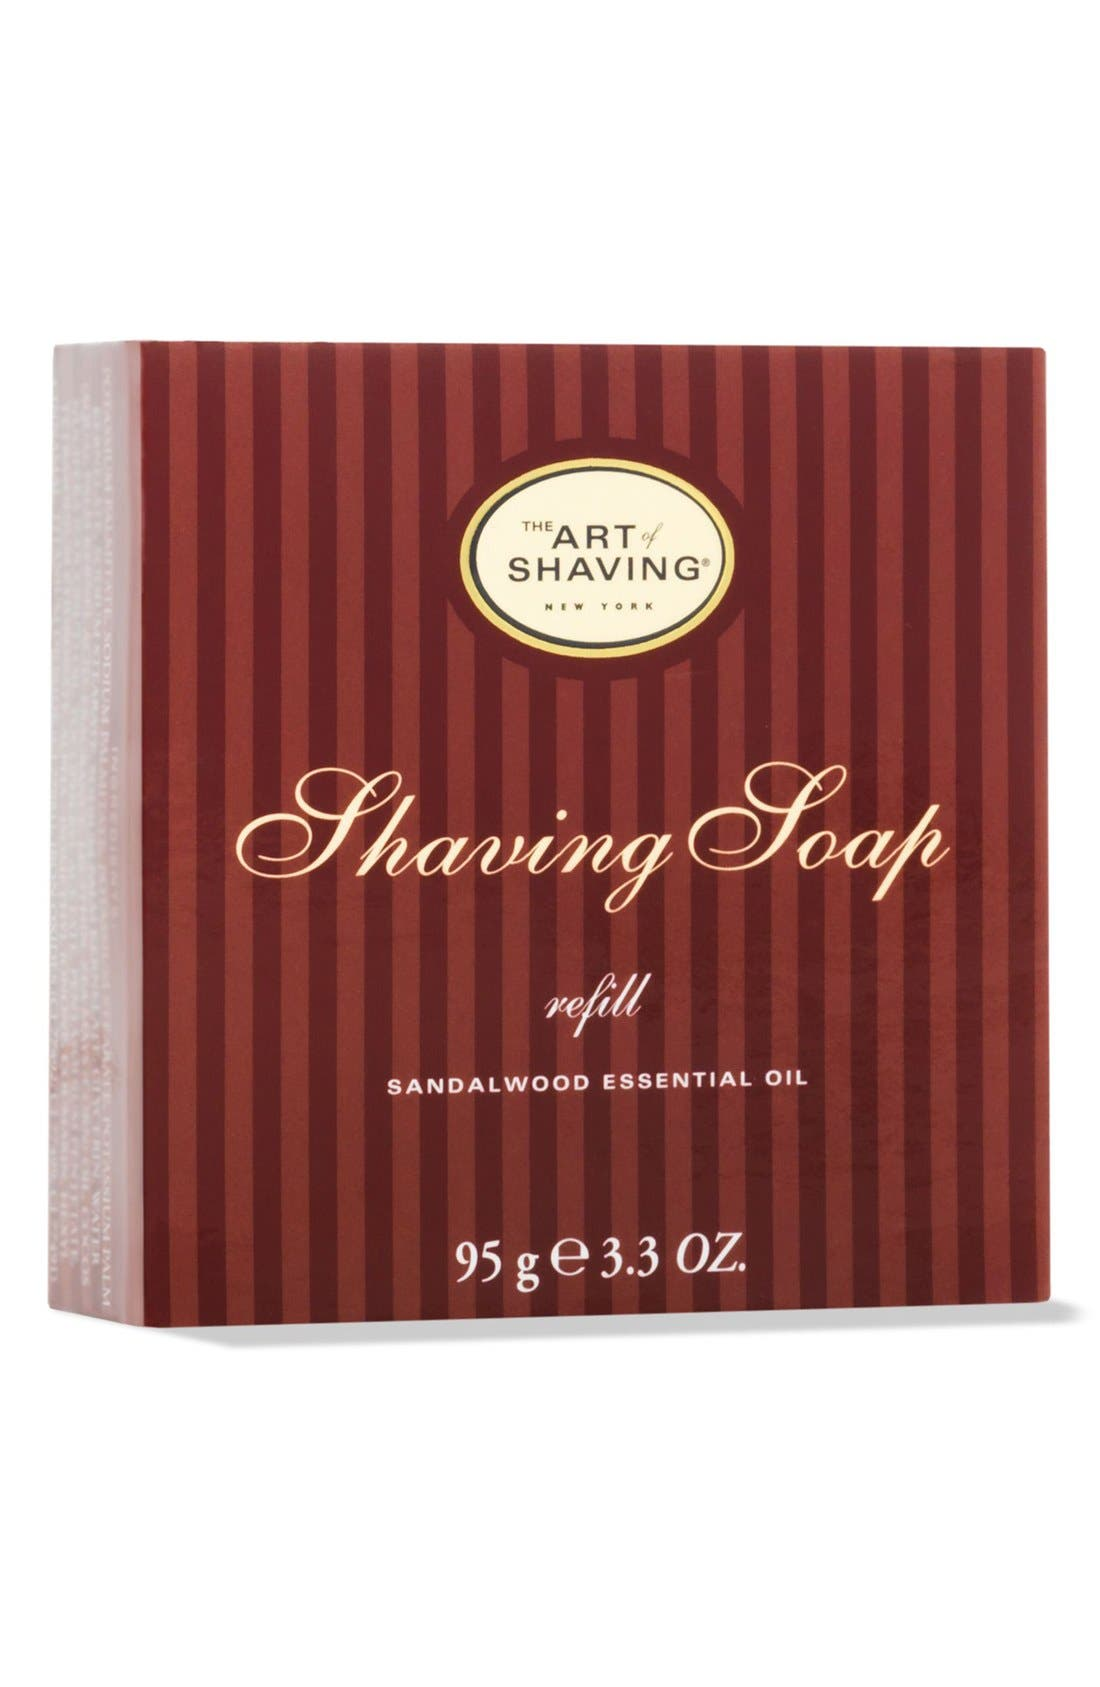 The Art of Shaving® Sandalwood Shaving Soap Refill